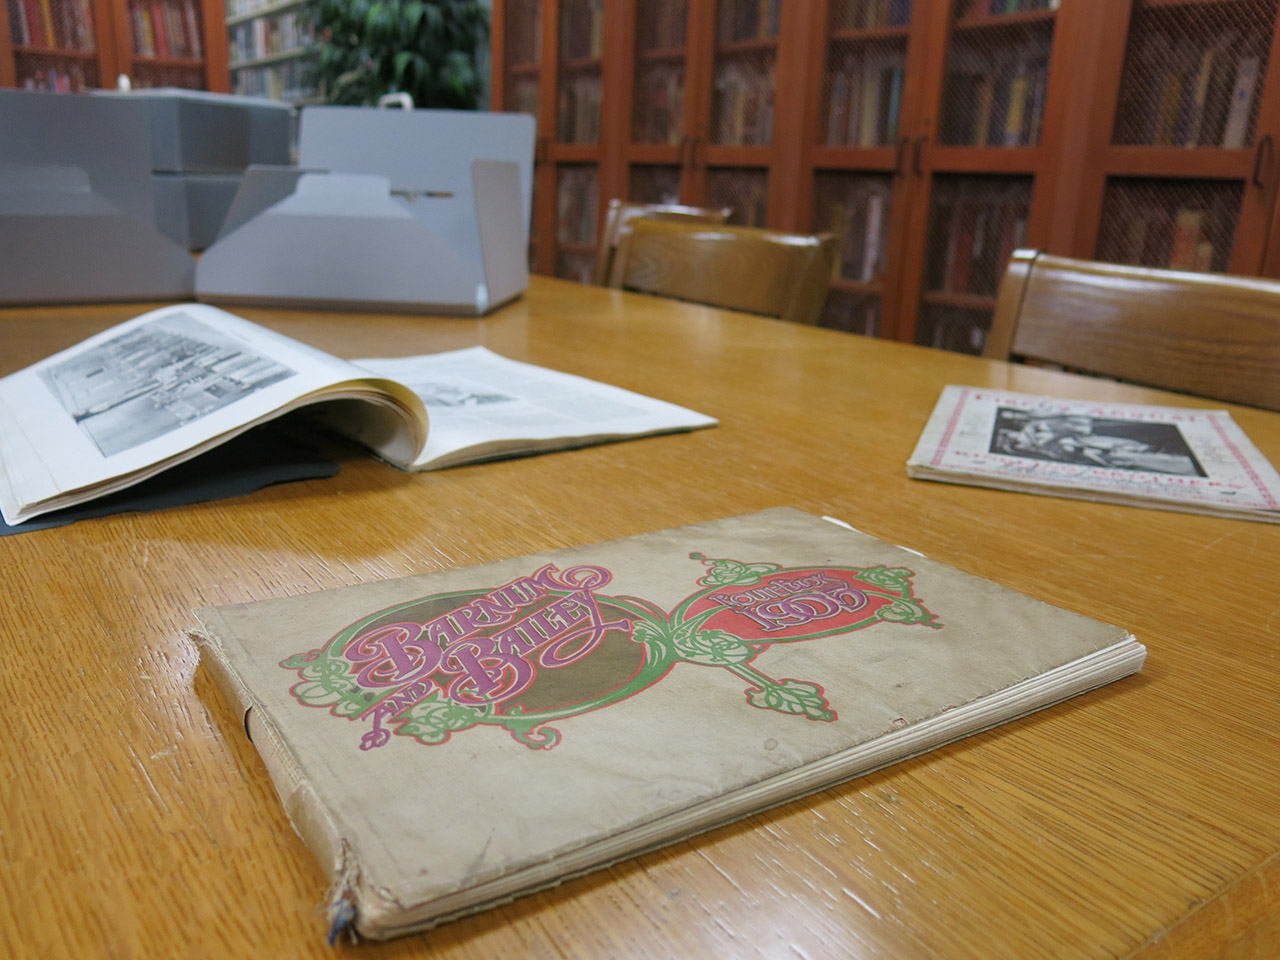 image of circus route book form Milner Library Special Collections at Illinois State University.